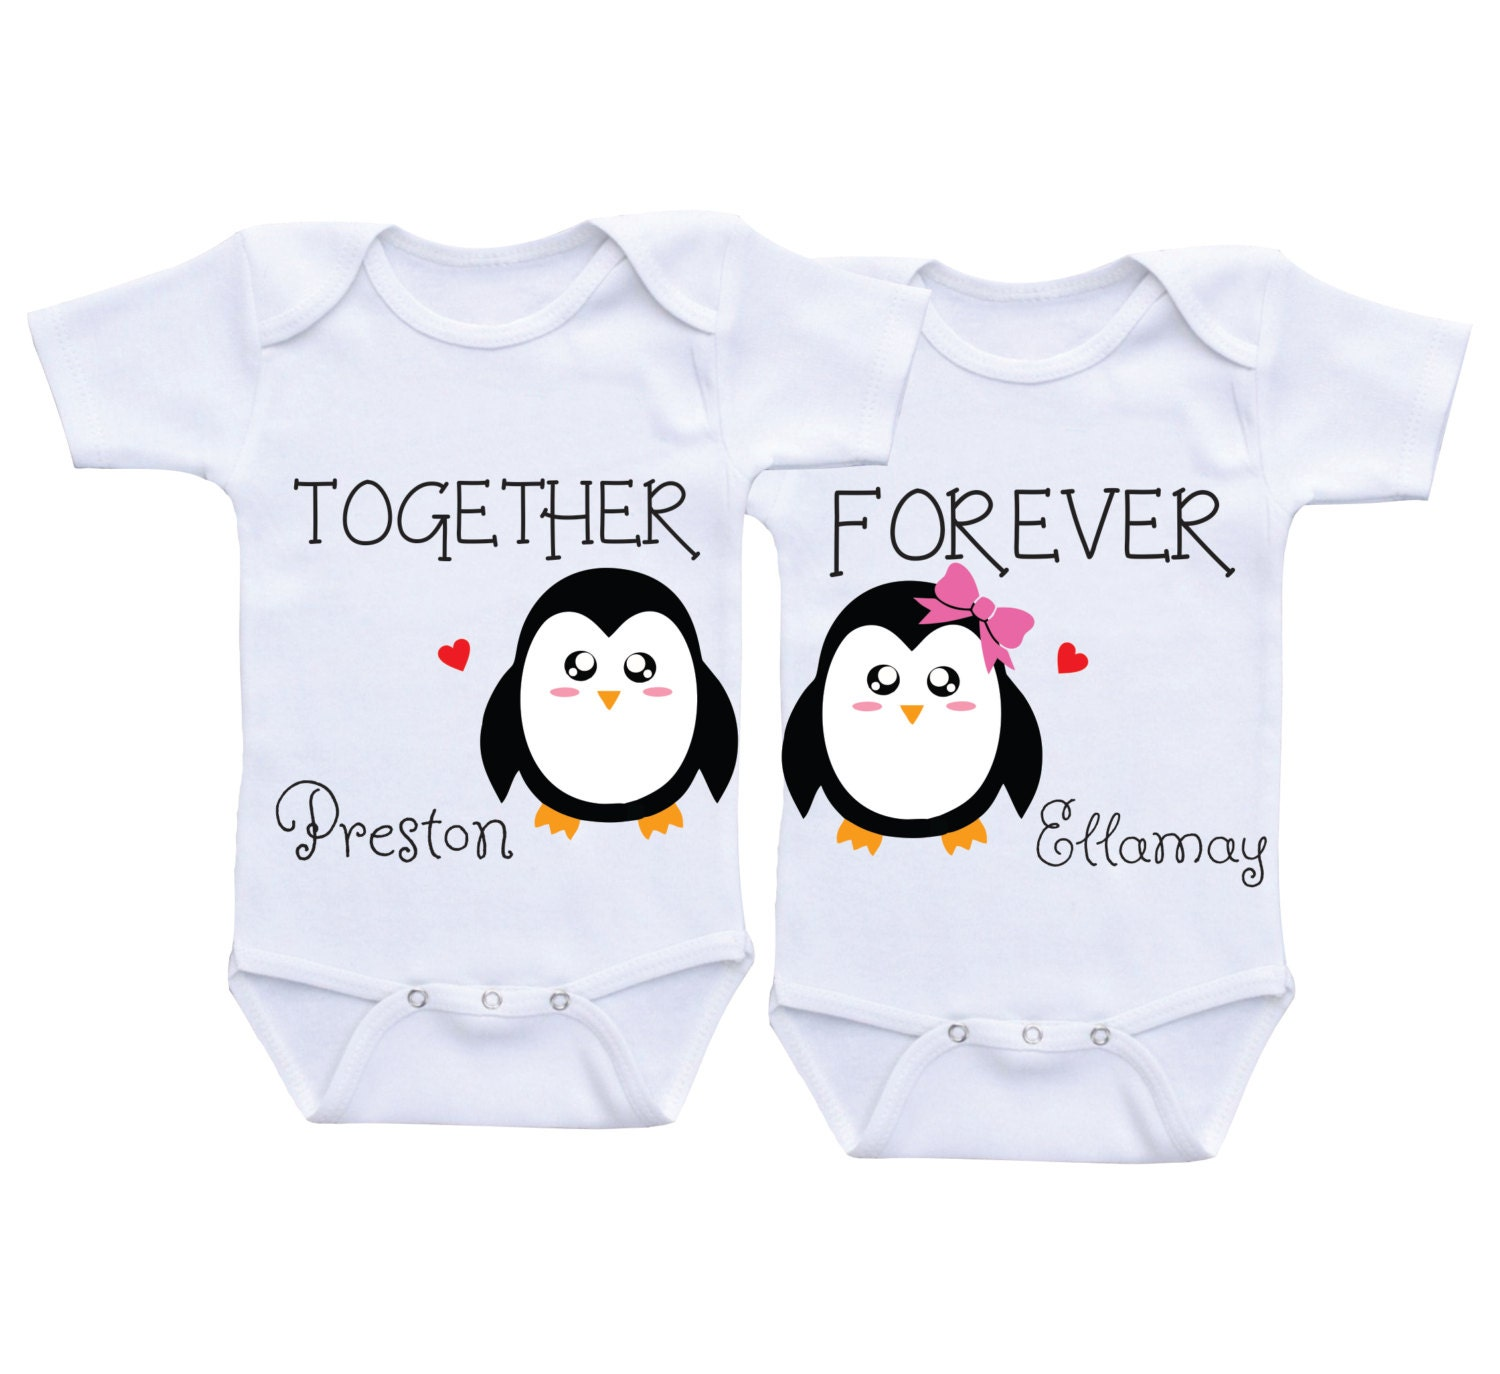 twin gift ideas  etsy, Baby shower